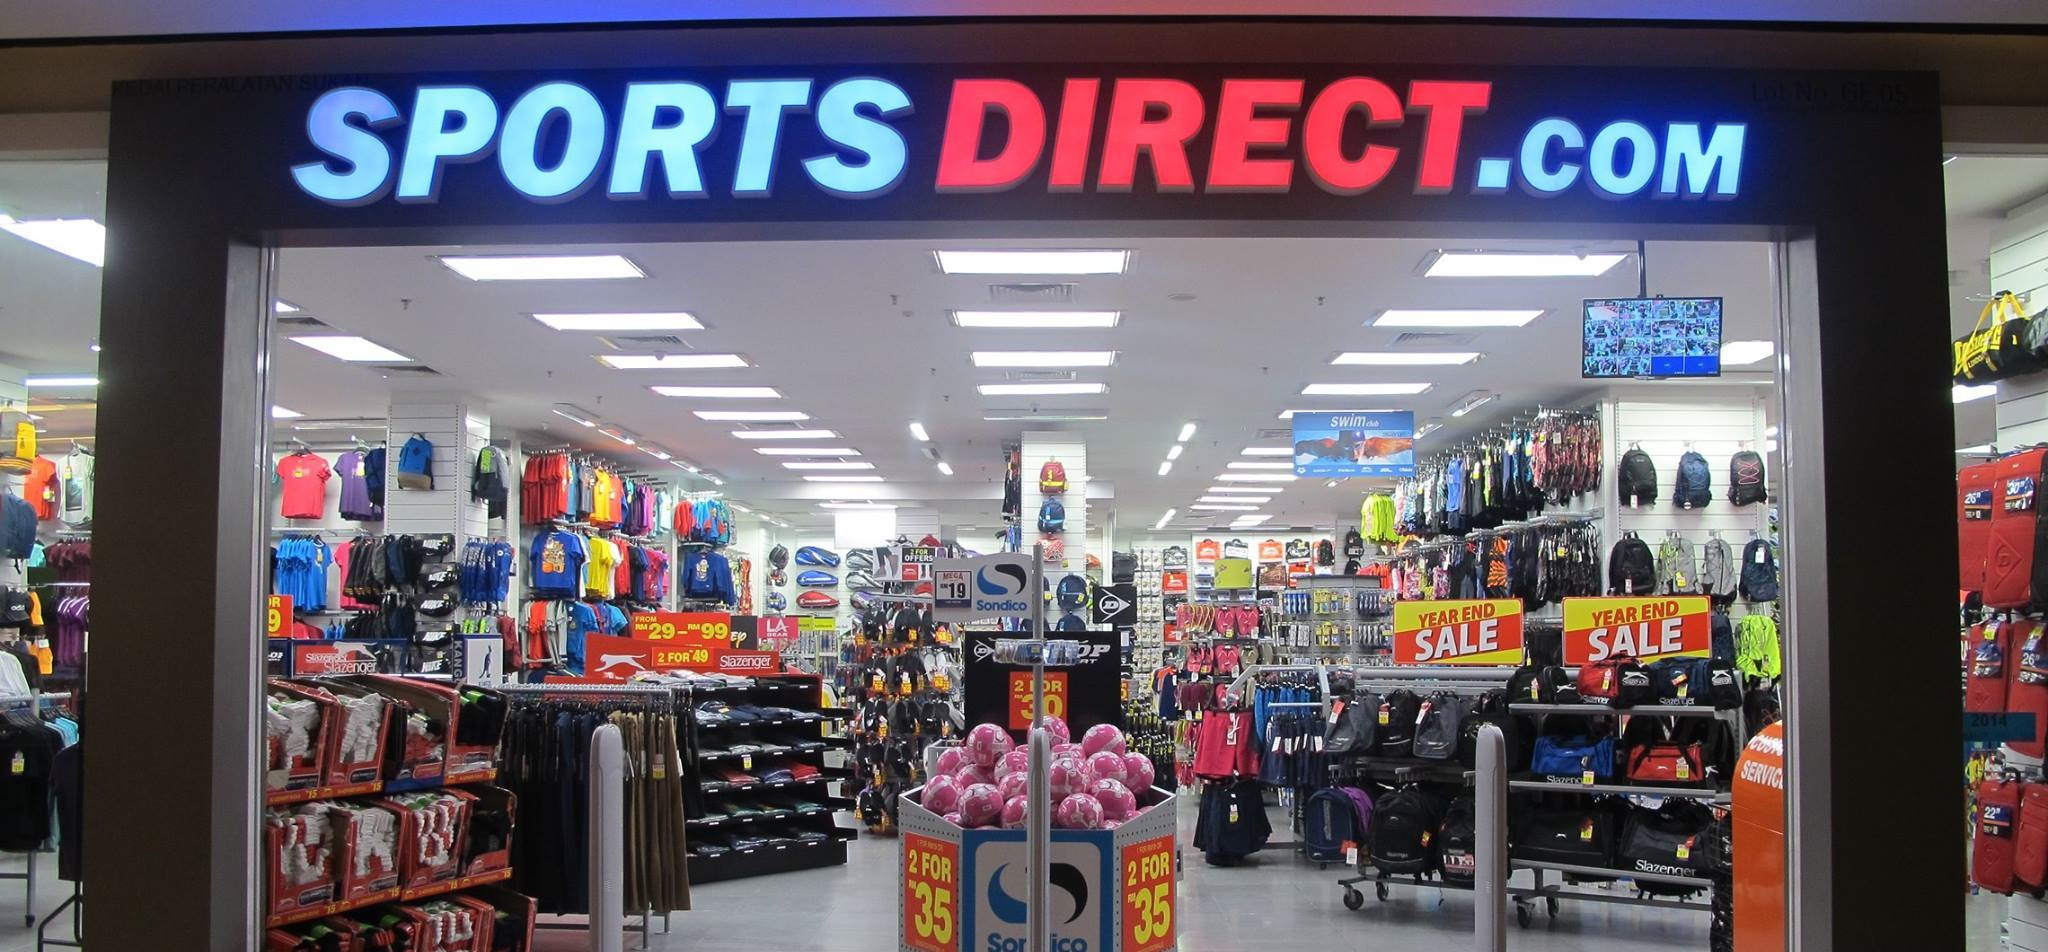 Sports Direct Buys Department Store Group House of Fraser for £90 Million